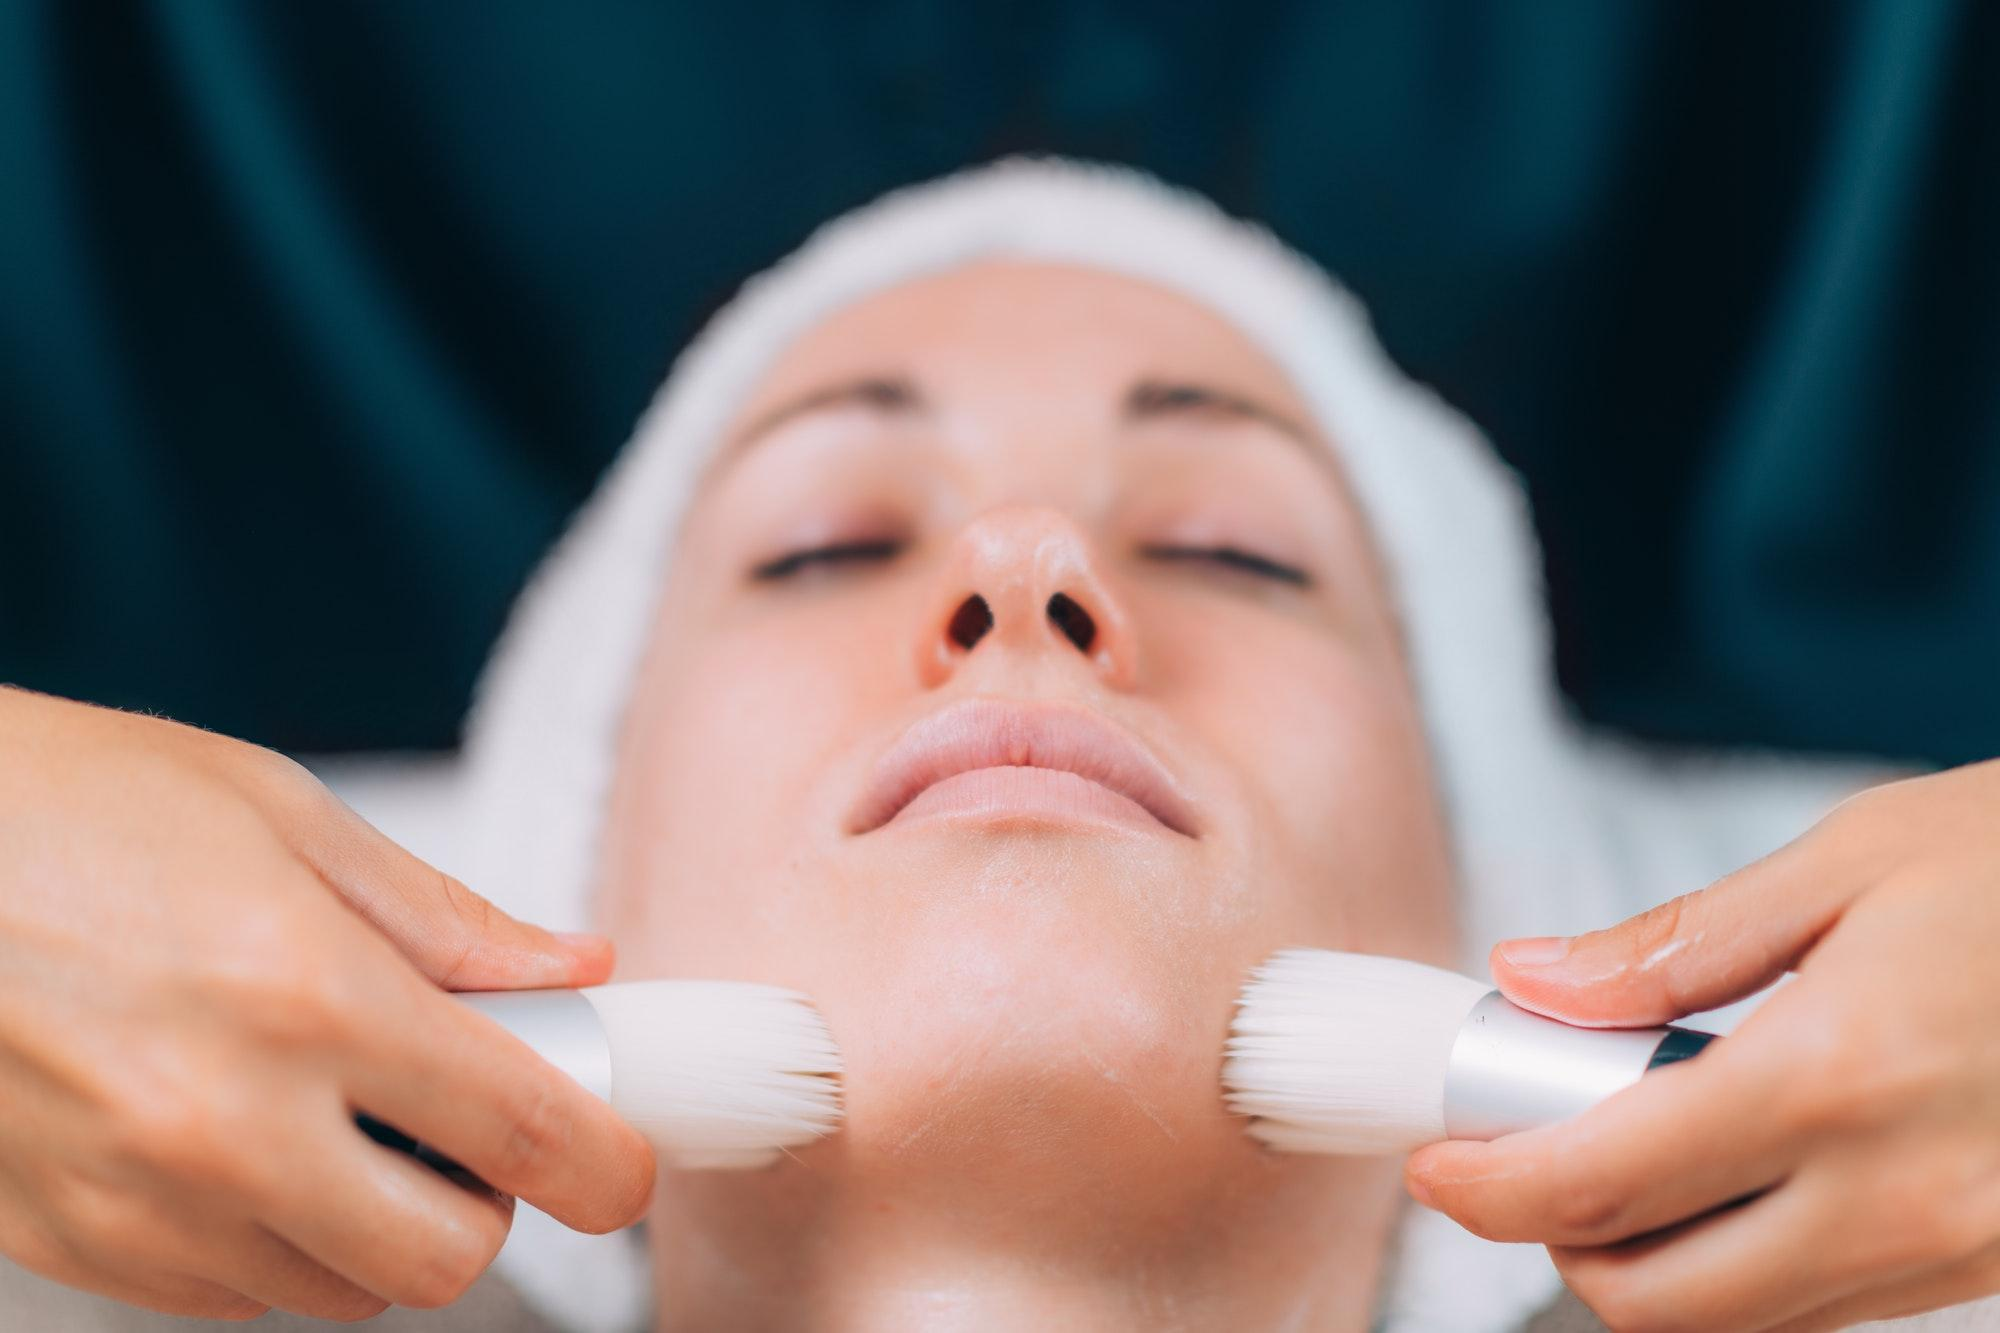 Cleaning Face for Cosmetic Treatment